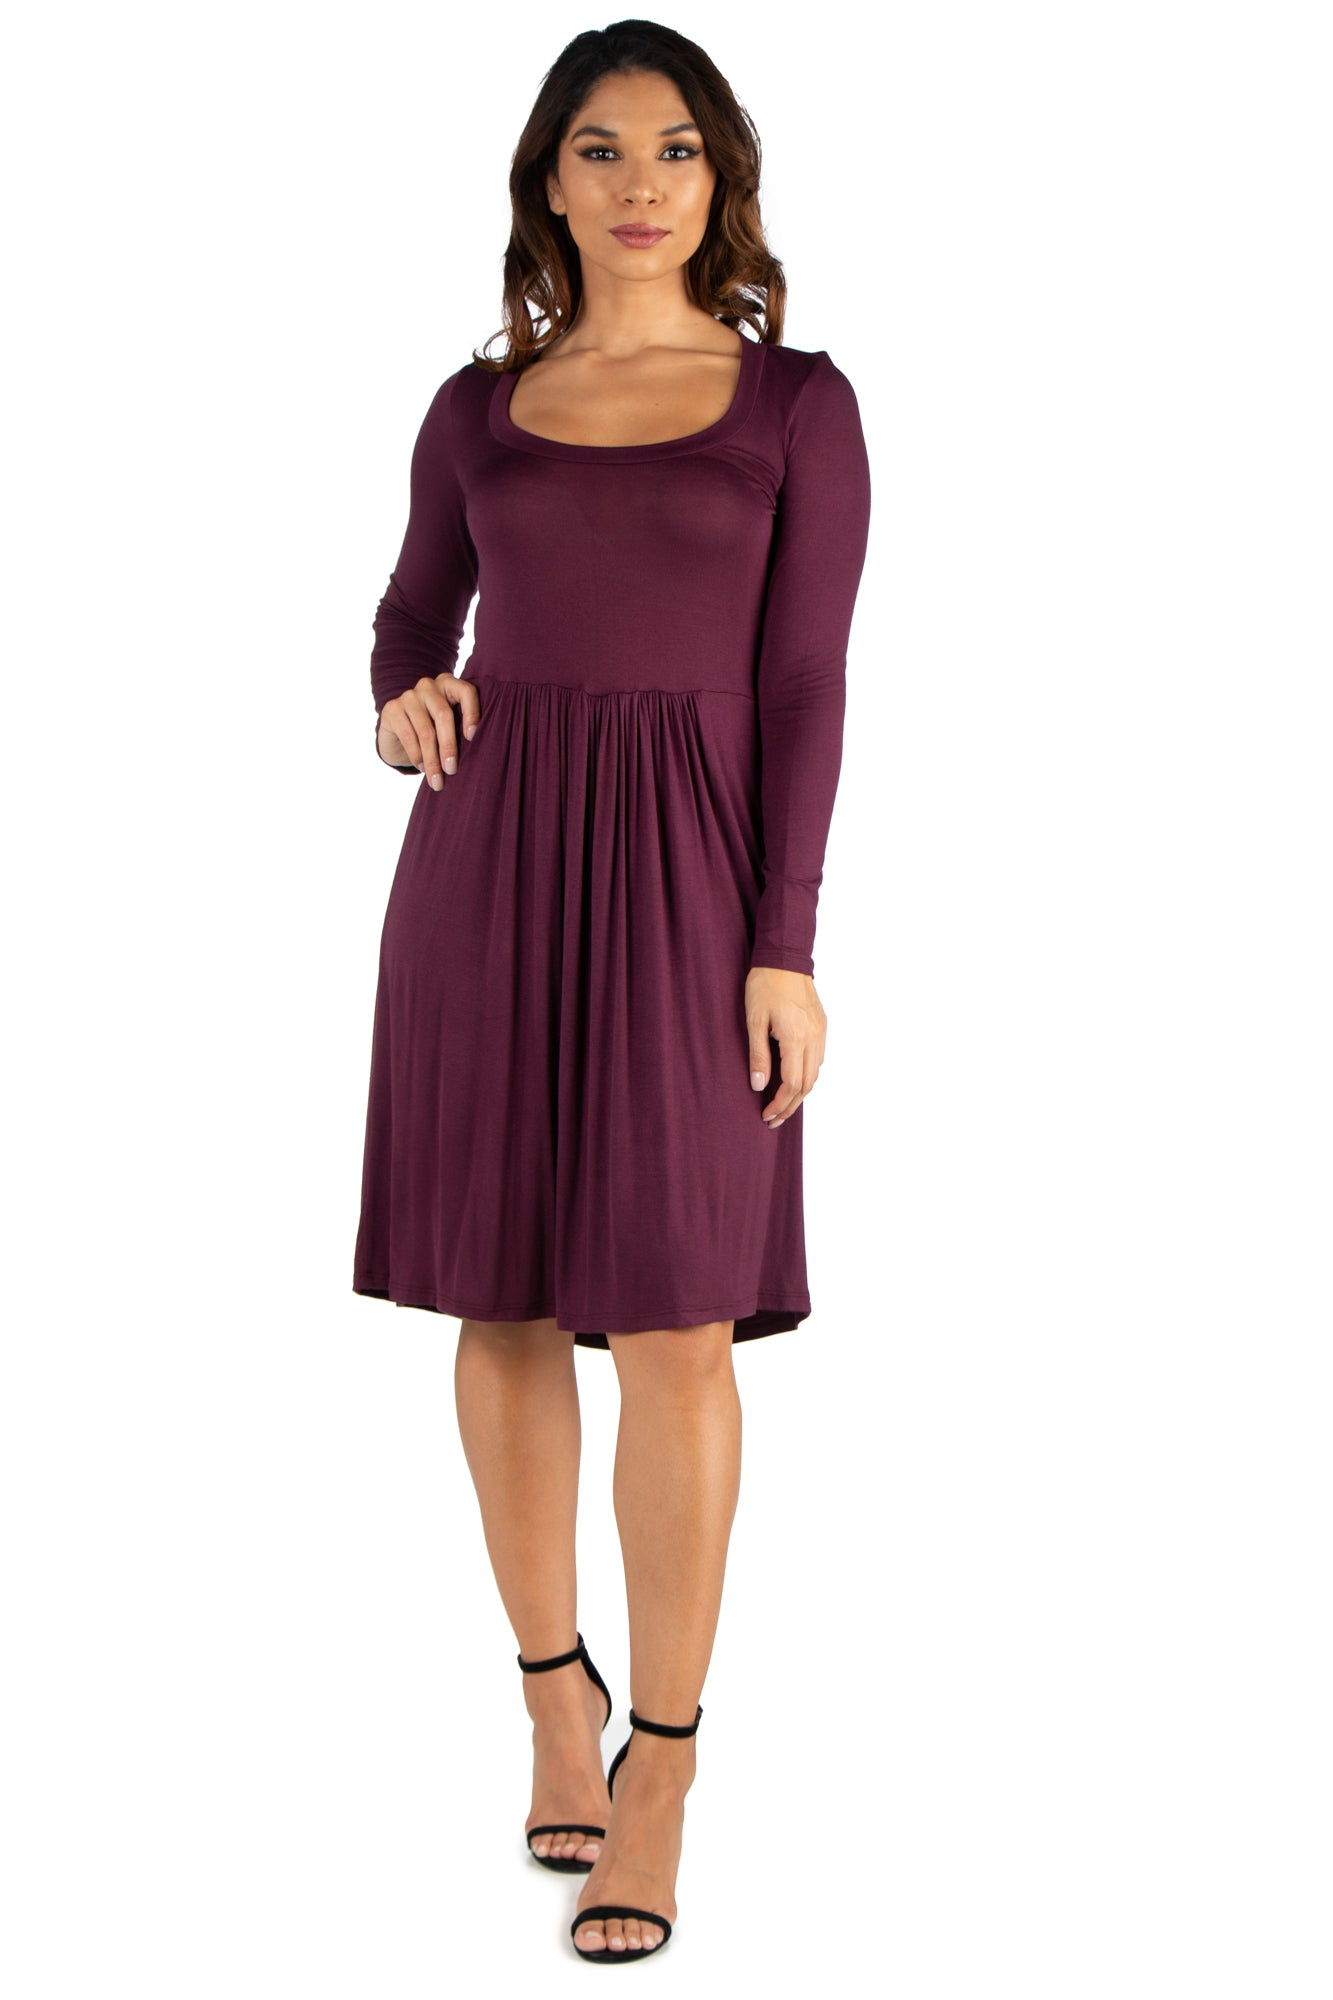 24seven Comfort Apparel Casual Long Sleeve Pleated Dress-Dresses-24Seven Comfort Apparel-PLUM-S-24/7 Comfort Apparel